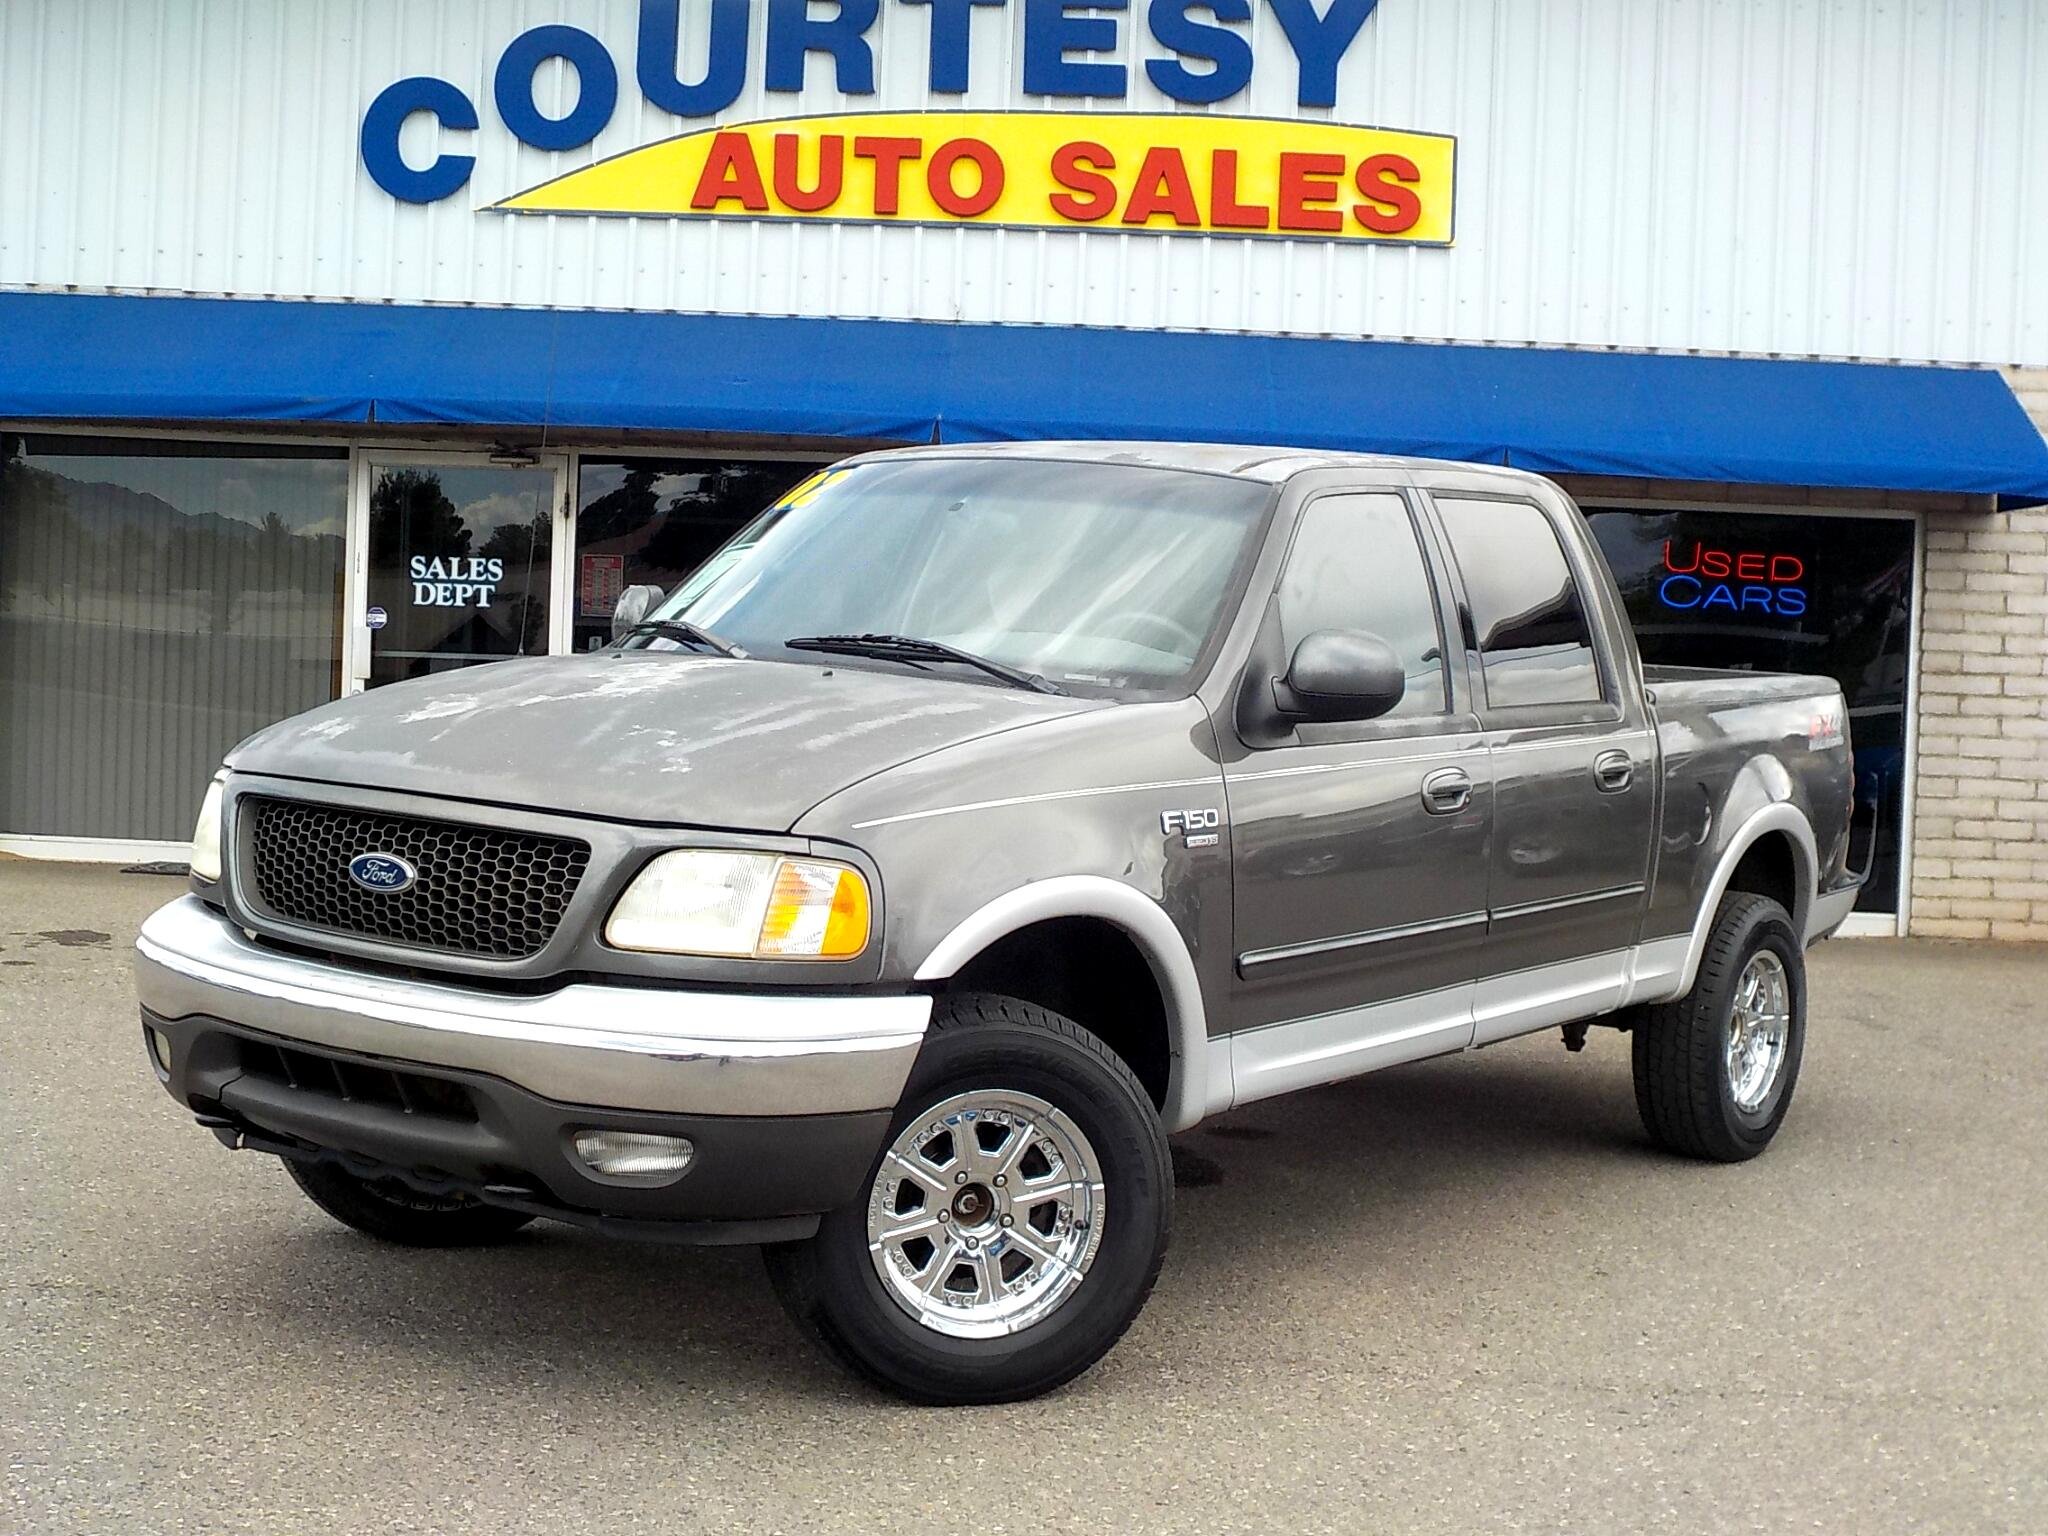 2002 Ford F-150 4WD SuperCrew 139